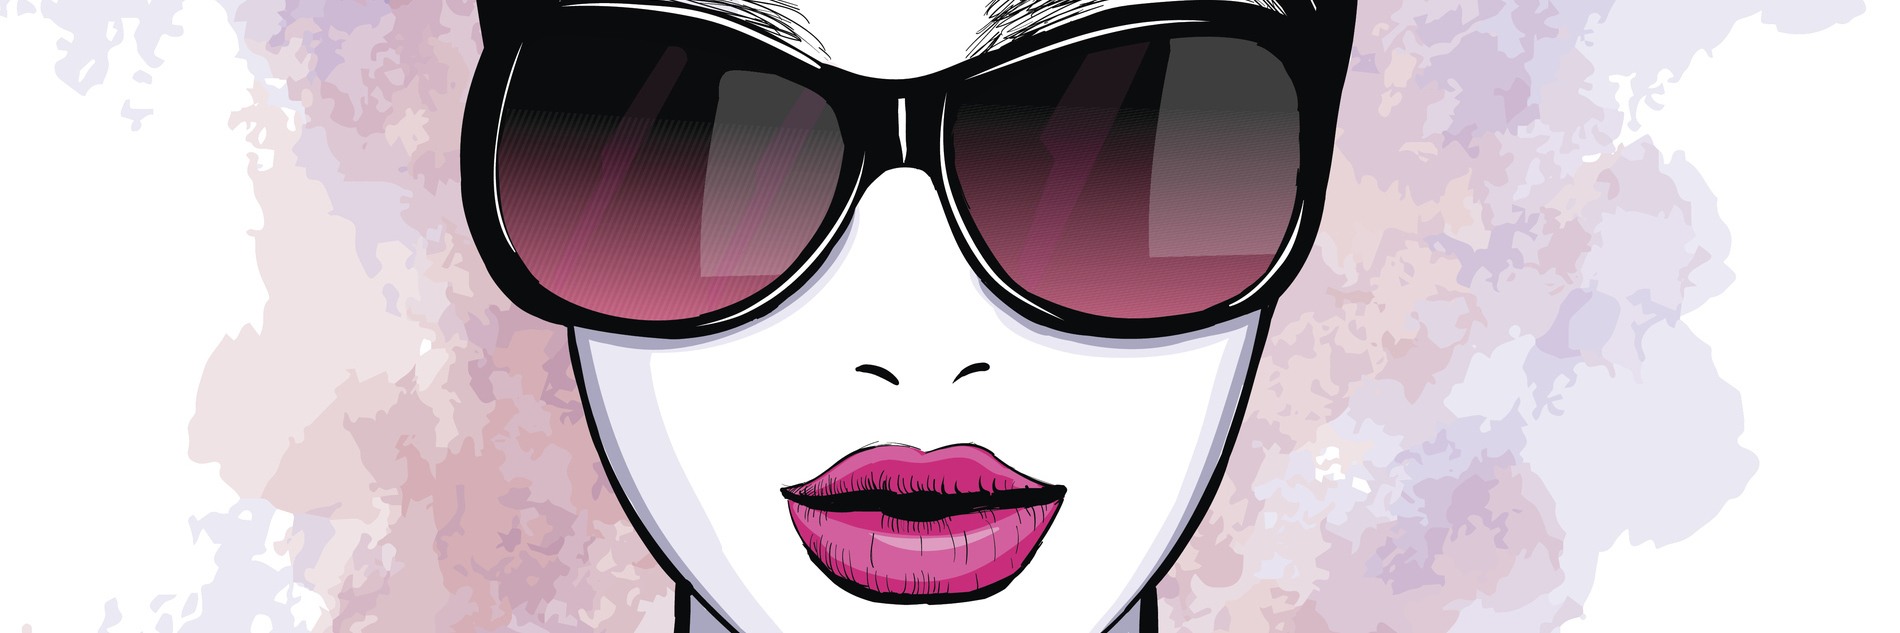 illustration of woman with pink dress and sunglasses